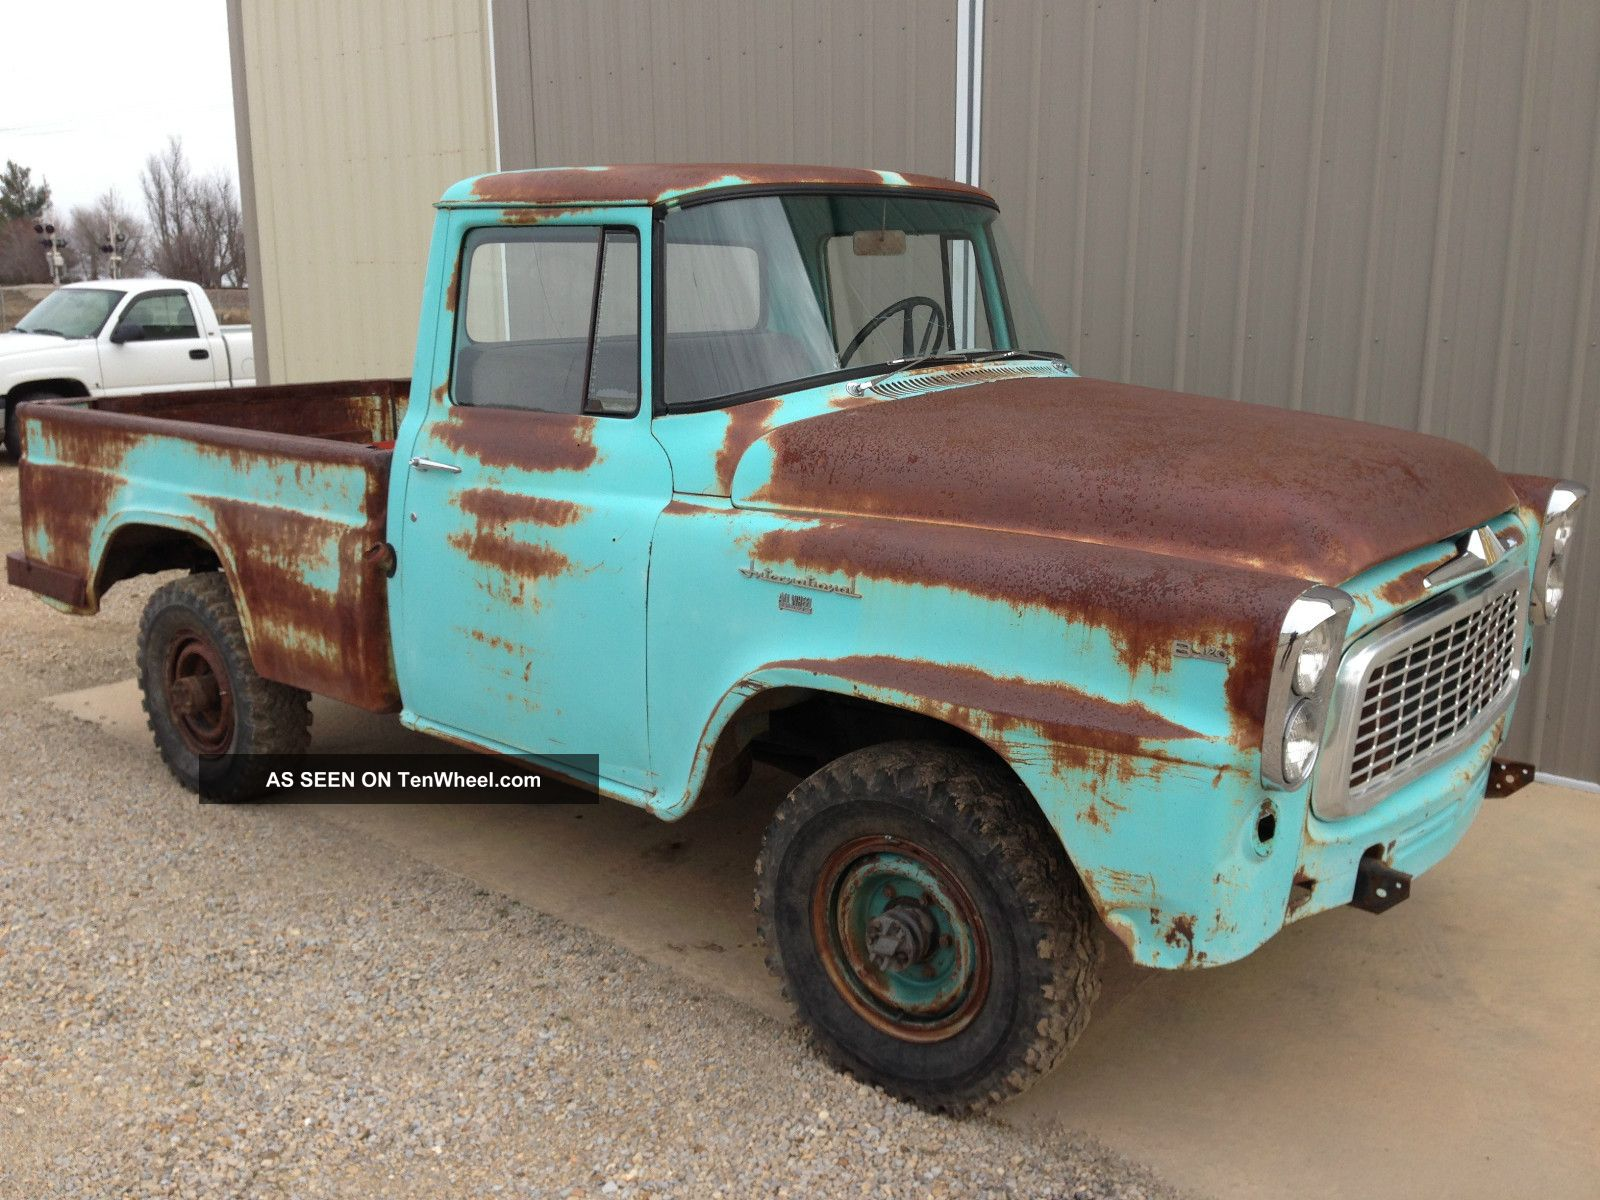 1960 International B120 3 / 4 Ton 4x4 Short Bed Solid Truck Hard To Find Other photo